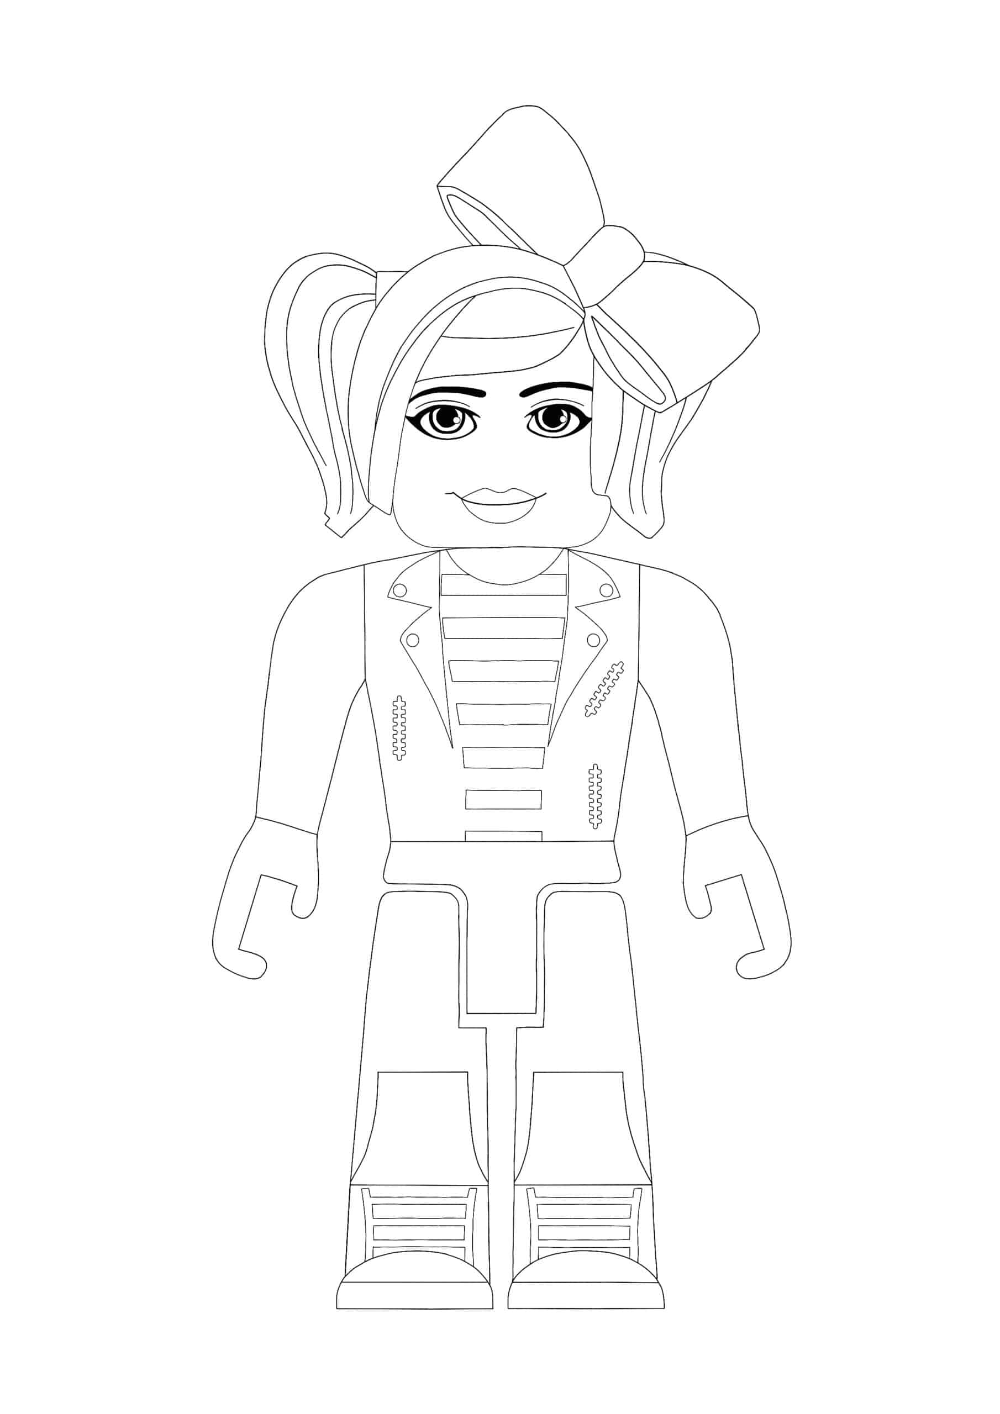 Roblox Girl Coloring Pages 2 Free Coloring Sheets 2021 In 2021 Coloring Pages For Girls Free Coloring Sheets Coloring Pages